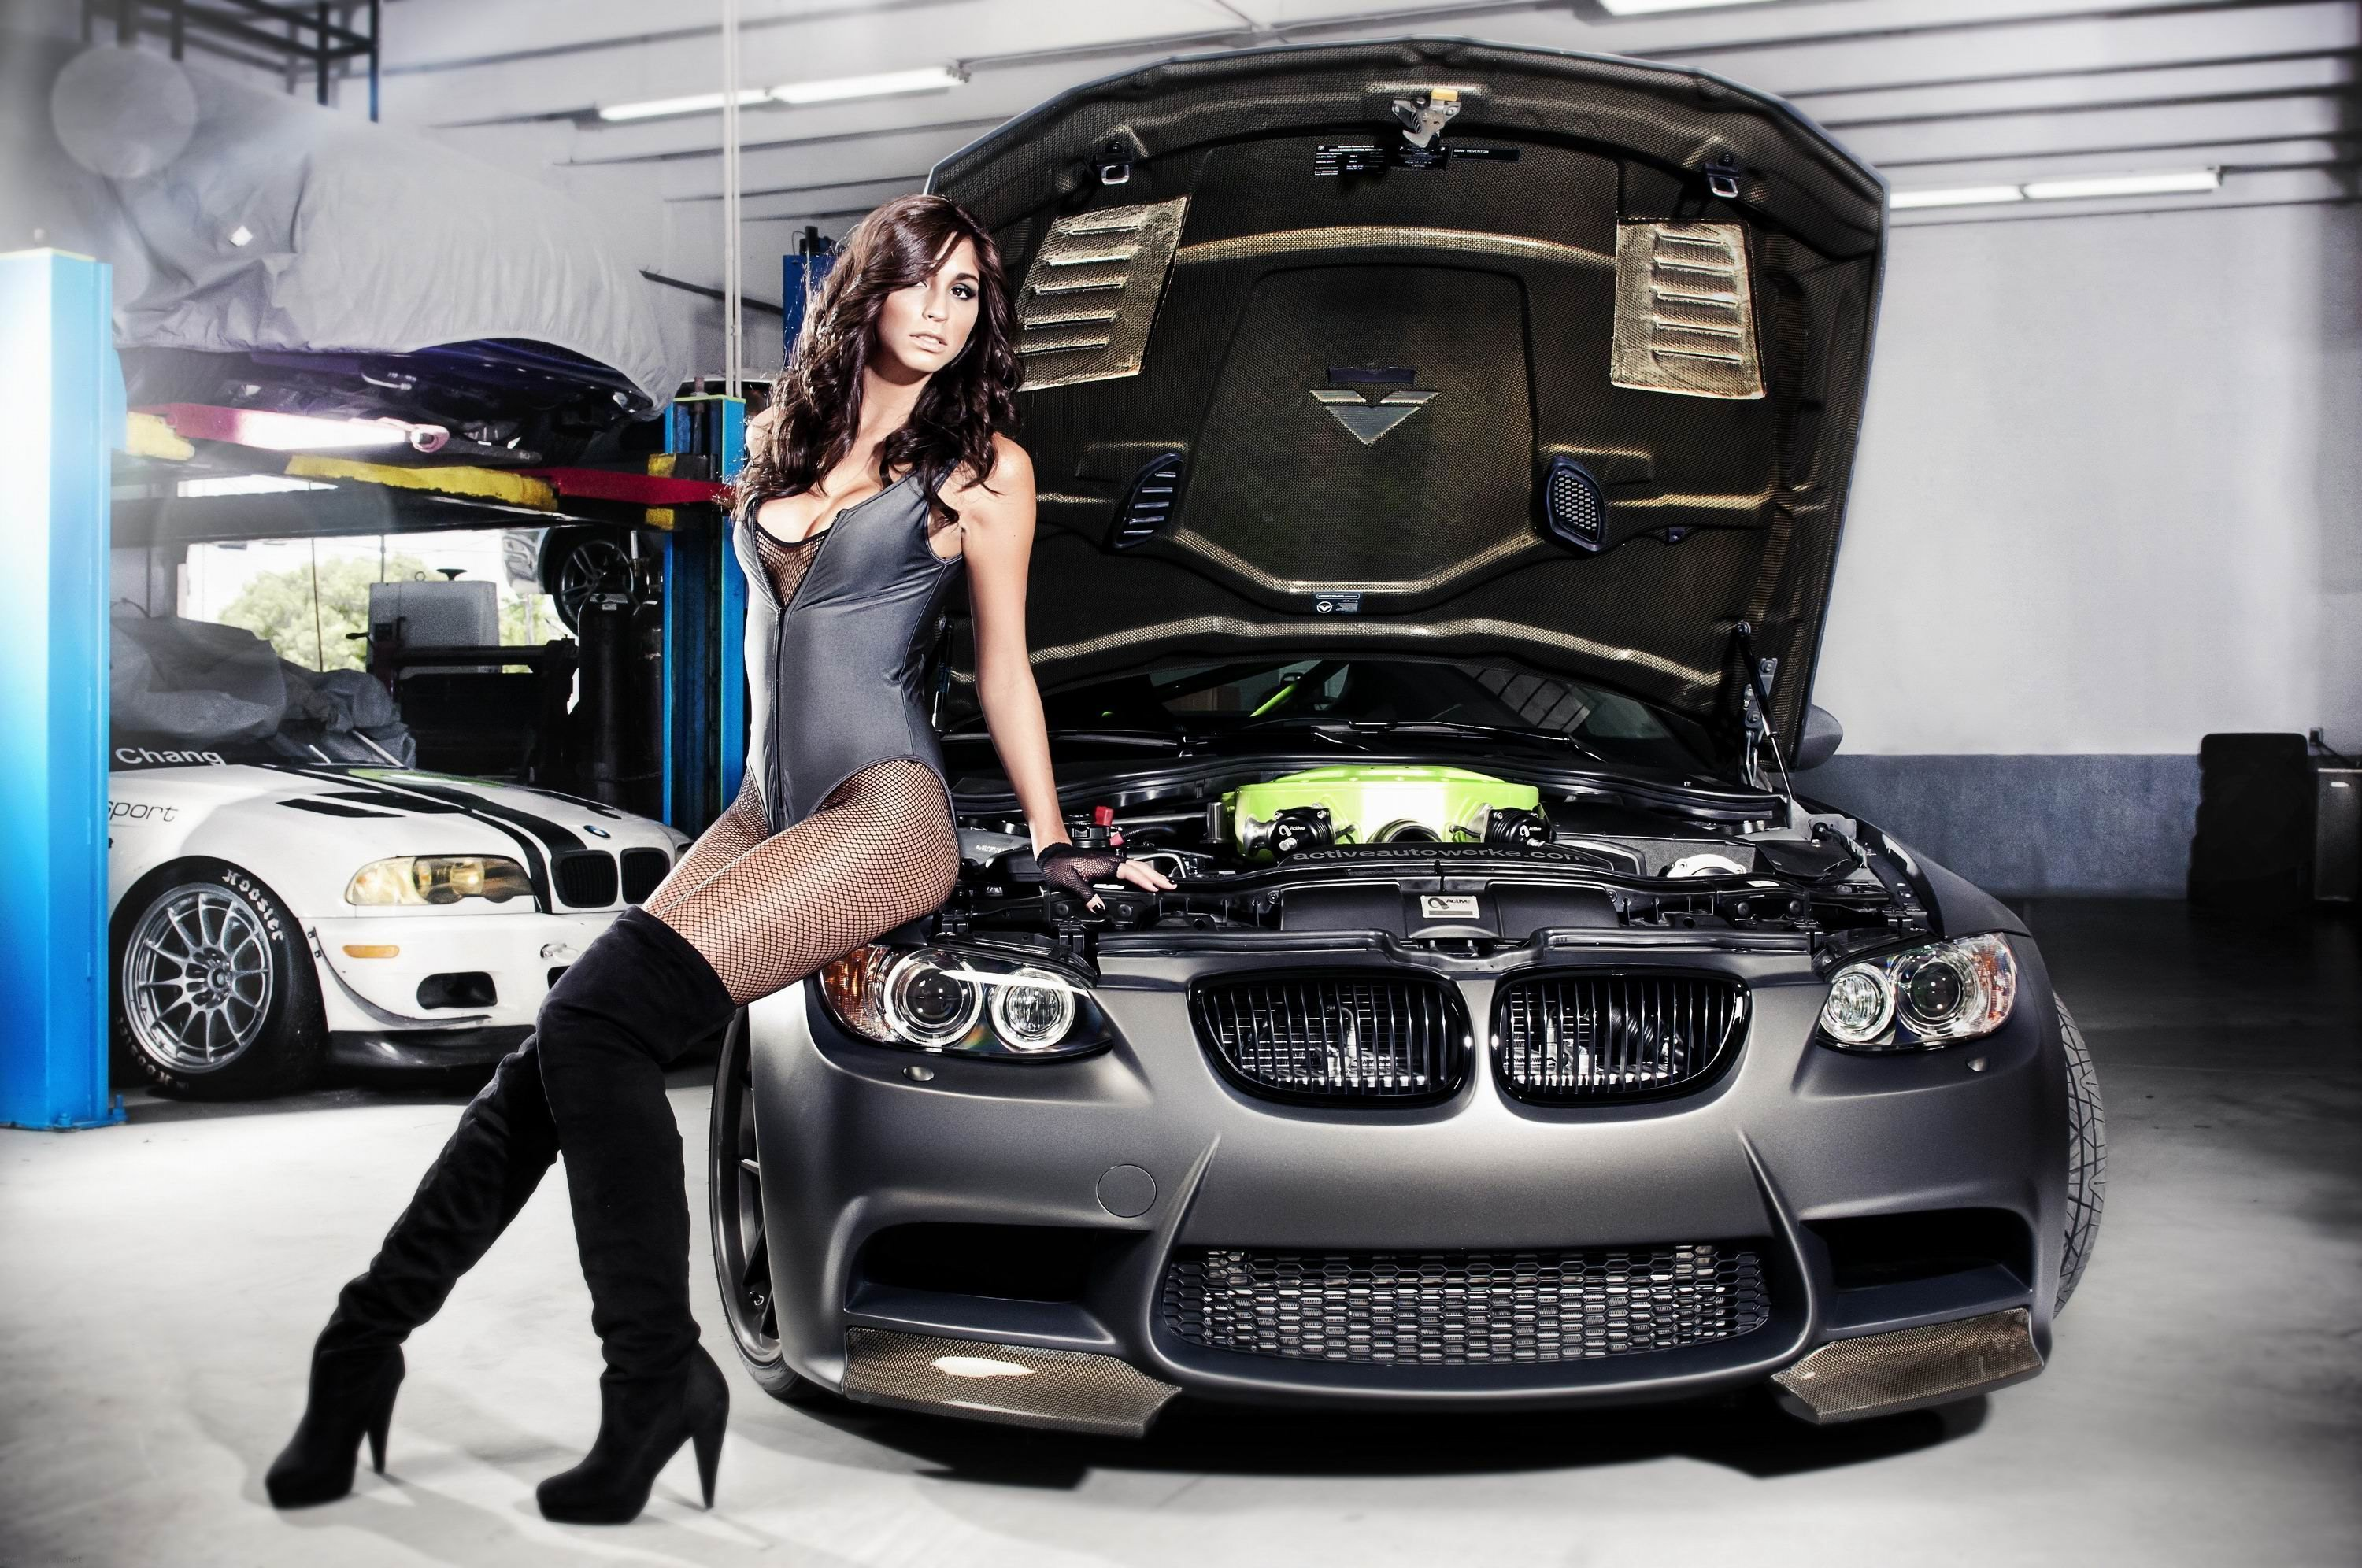 Fit Girl And Car Wallpapers | Car Wallpapers